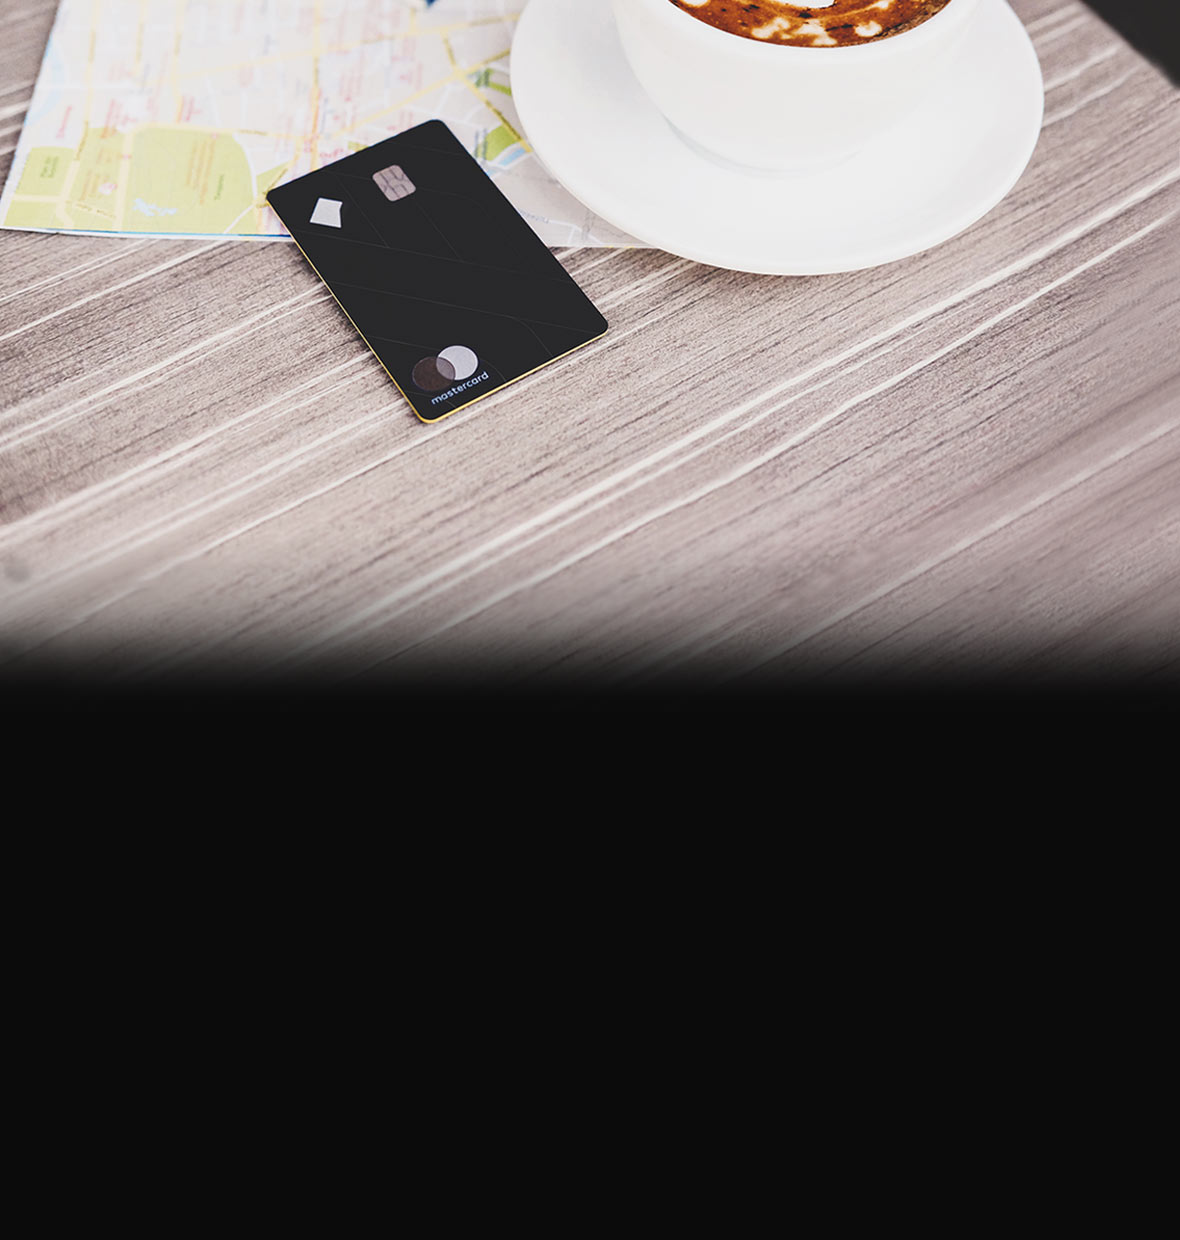 Ultimate Awards credit card on table with cup of coffee